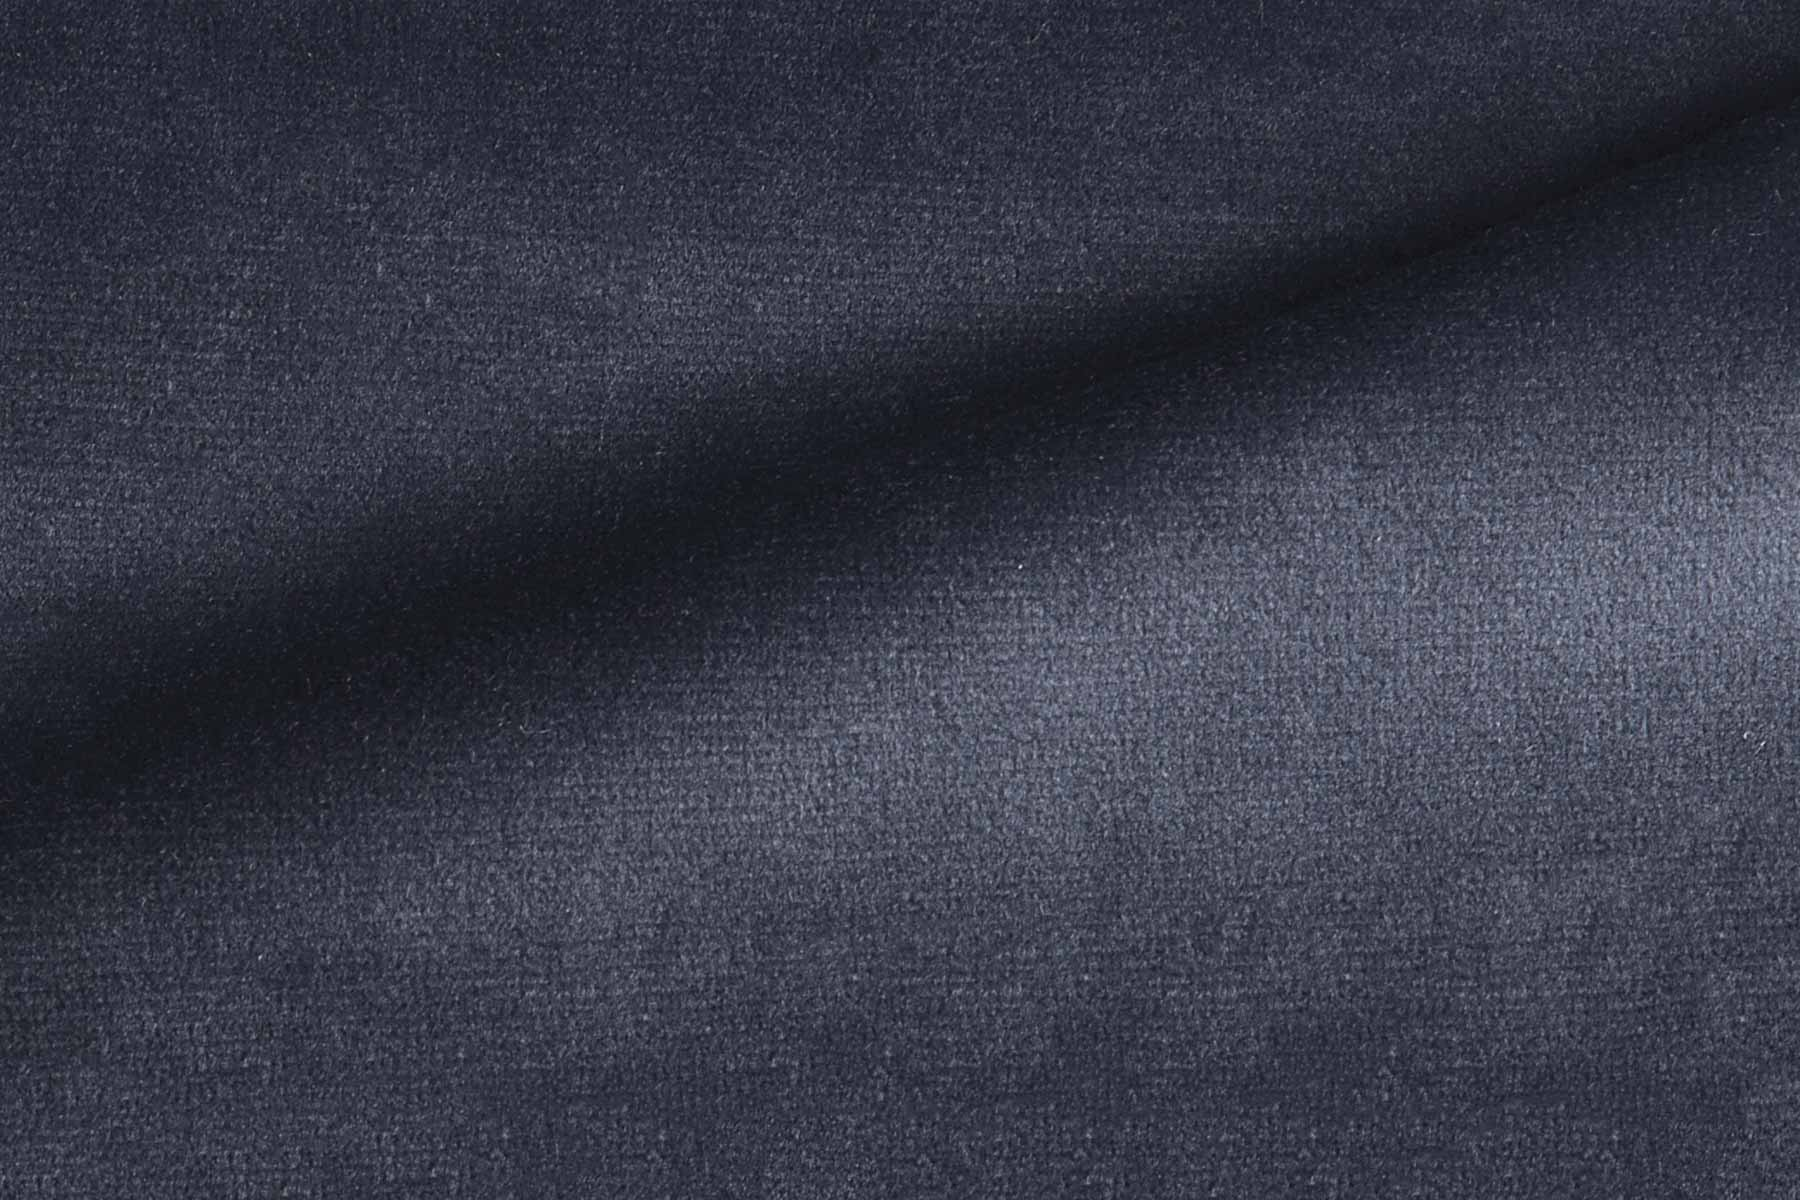 RADIANCE VELVET DEEP NAVY Fabric by KOKET